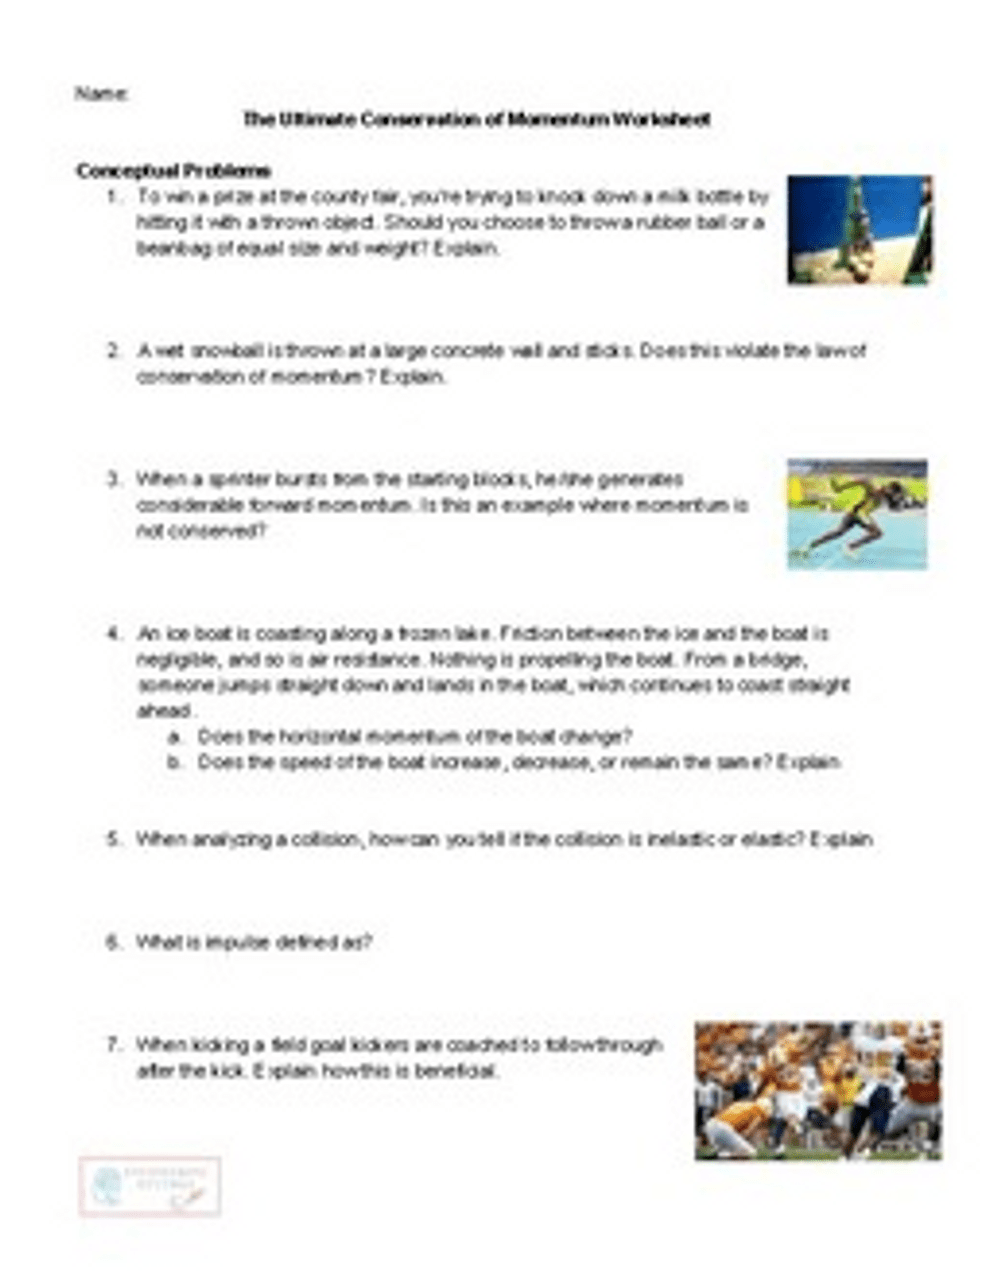 The Ultimate Conservation of Momentum Worksheet - Amped Up Learning [ 1280 x 1005 Pixel ]